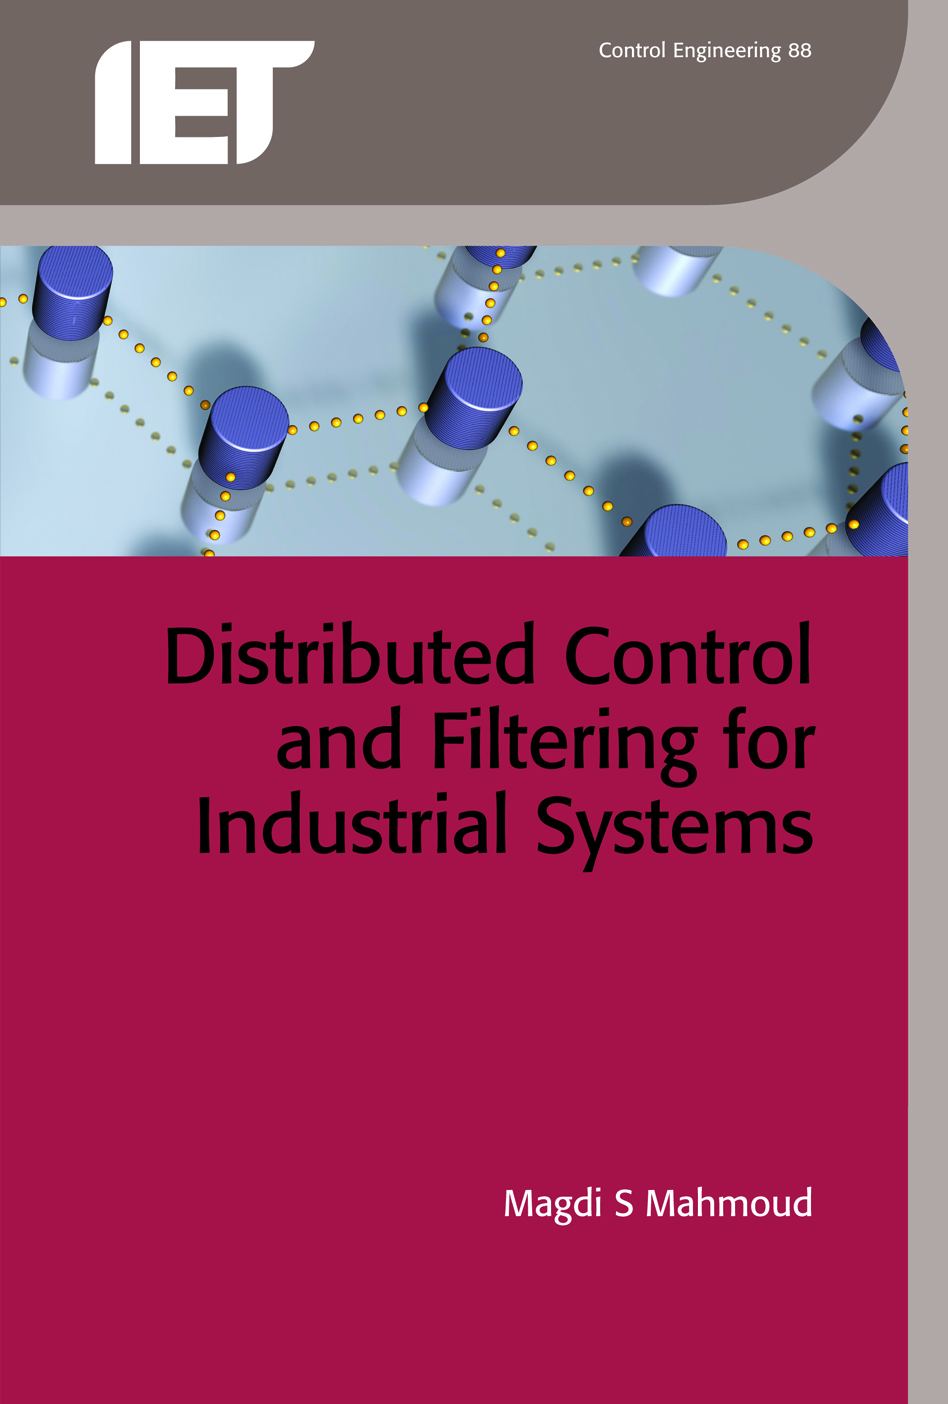 Distributed Control and Filtering for Industrial Systems